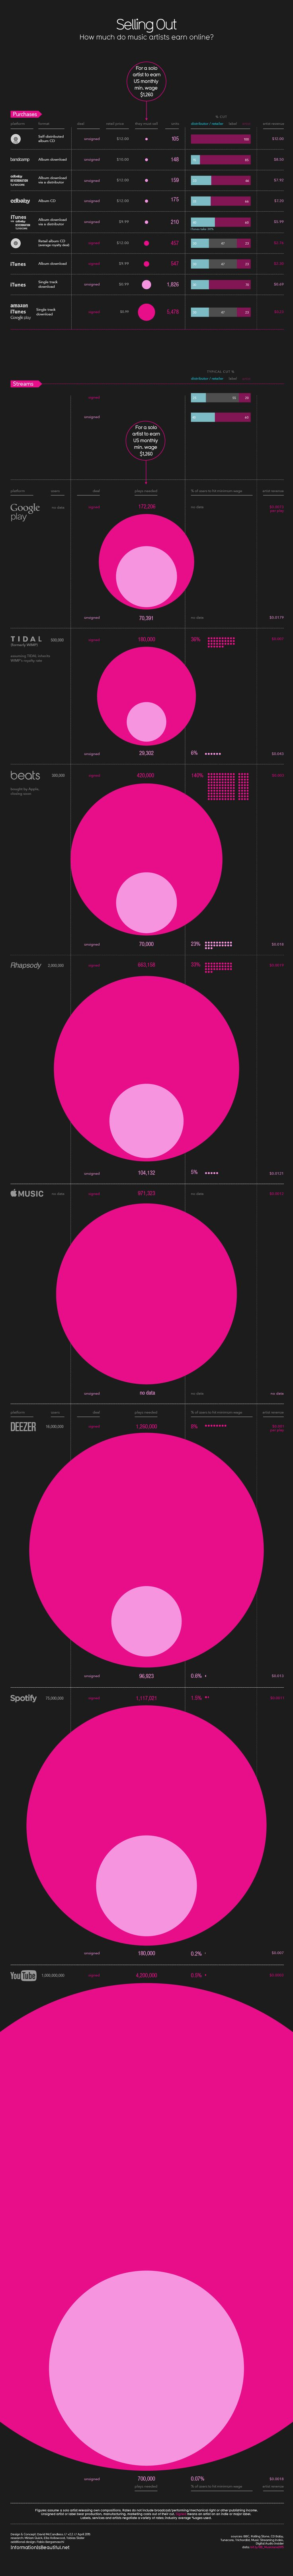 How Much Do Music Artists Earn Online – 2015 Remix   Information is Beautiful